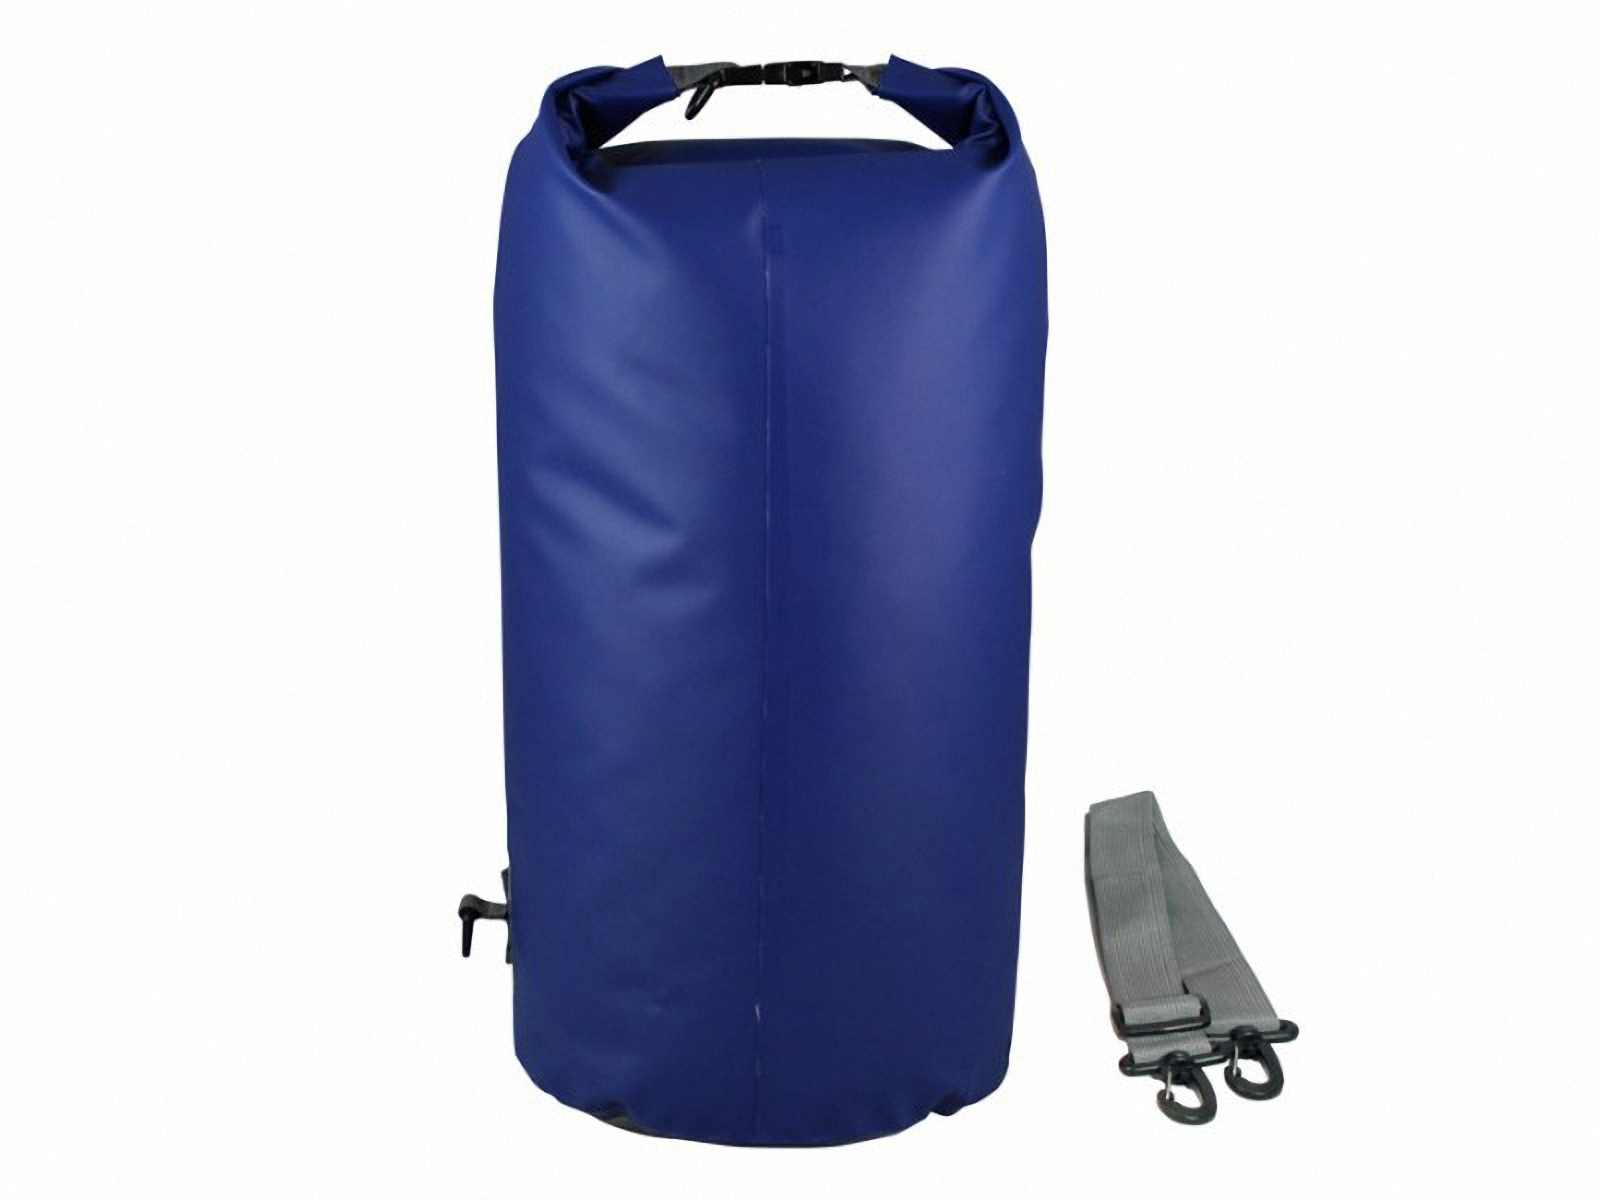 Водонепроницаемая сумка OverBoard US1005B-Chevy  - Waterproof Dry Tube Bag - 20L. Фото 1